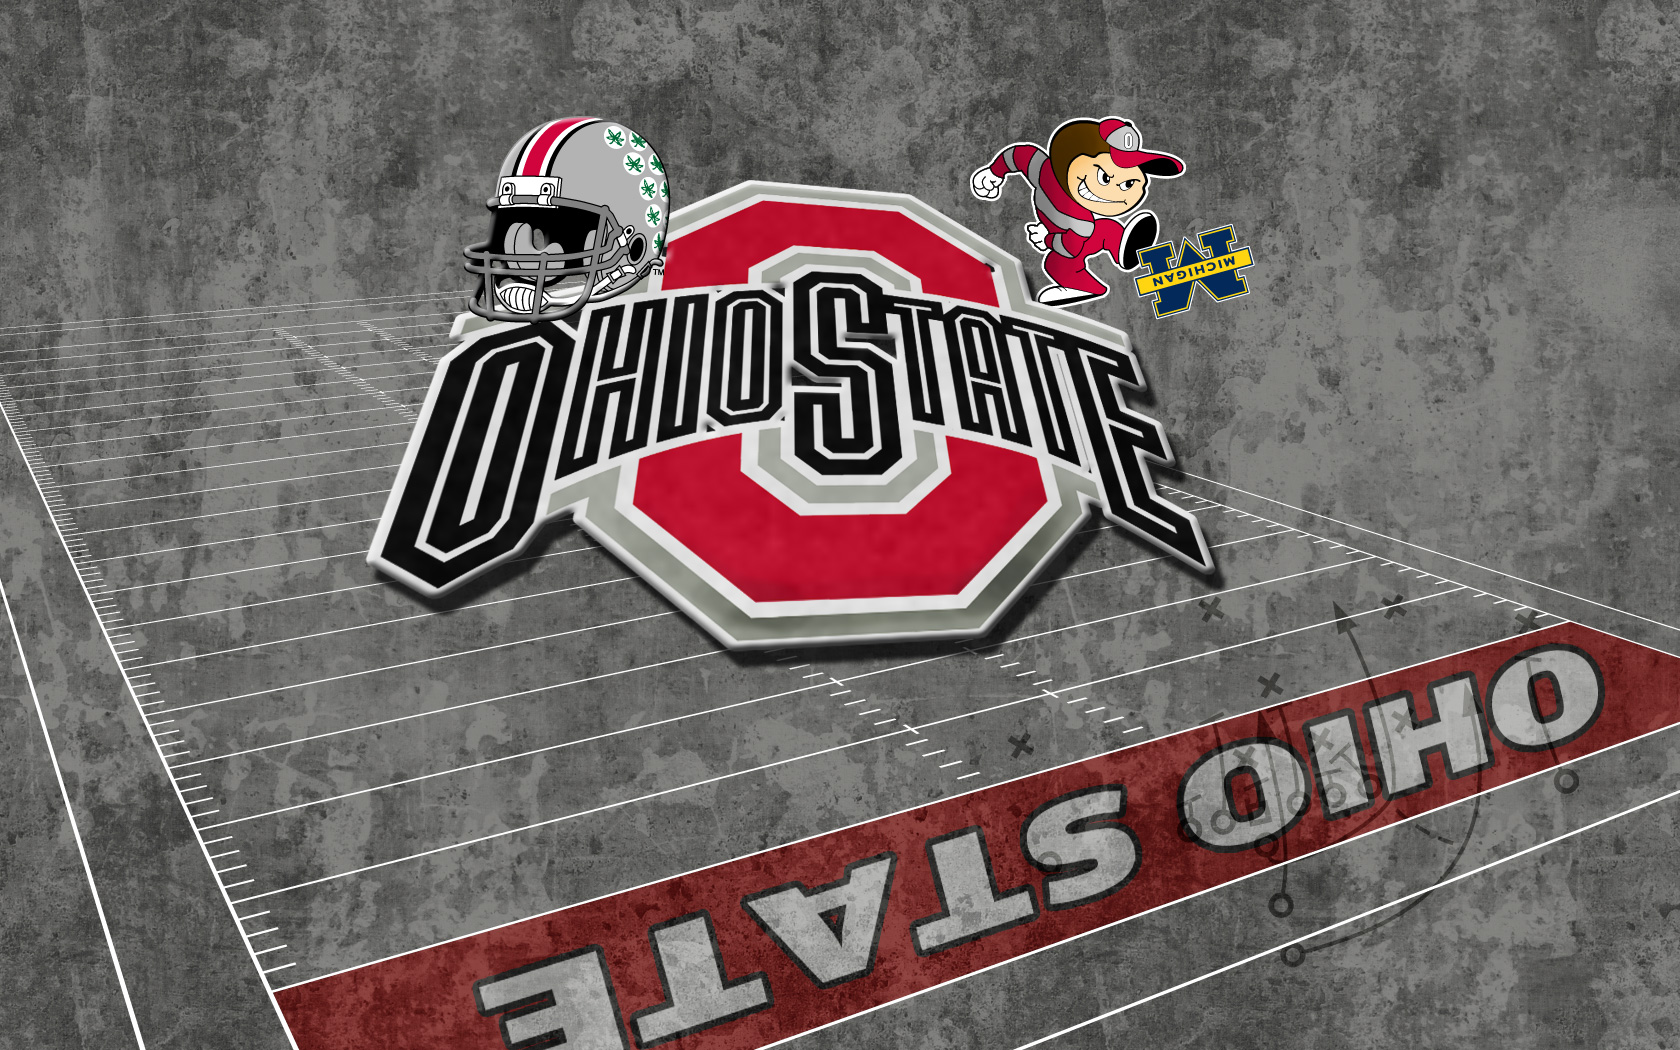 Download Ohio State Buckeyes Wallpaper Gallery